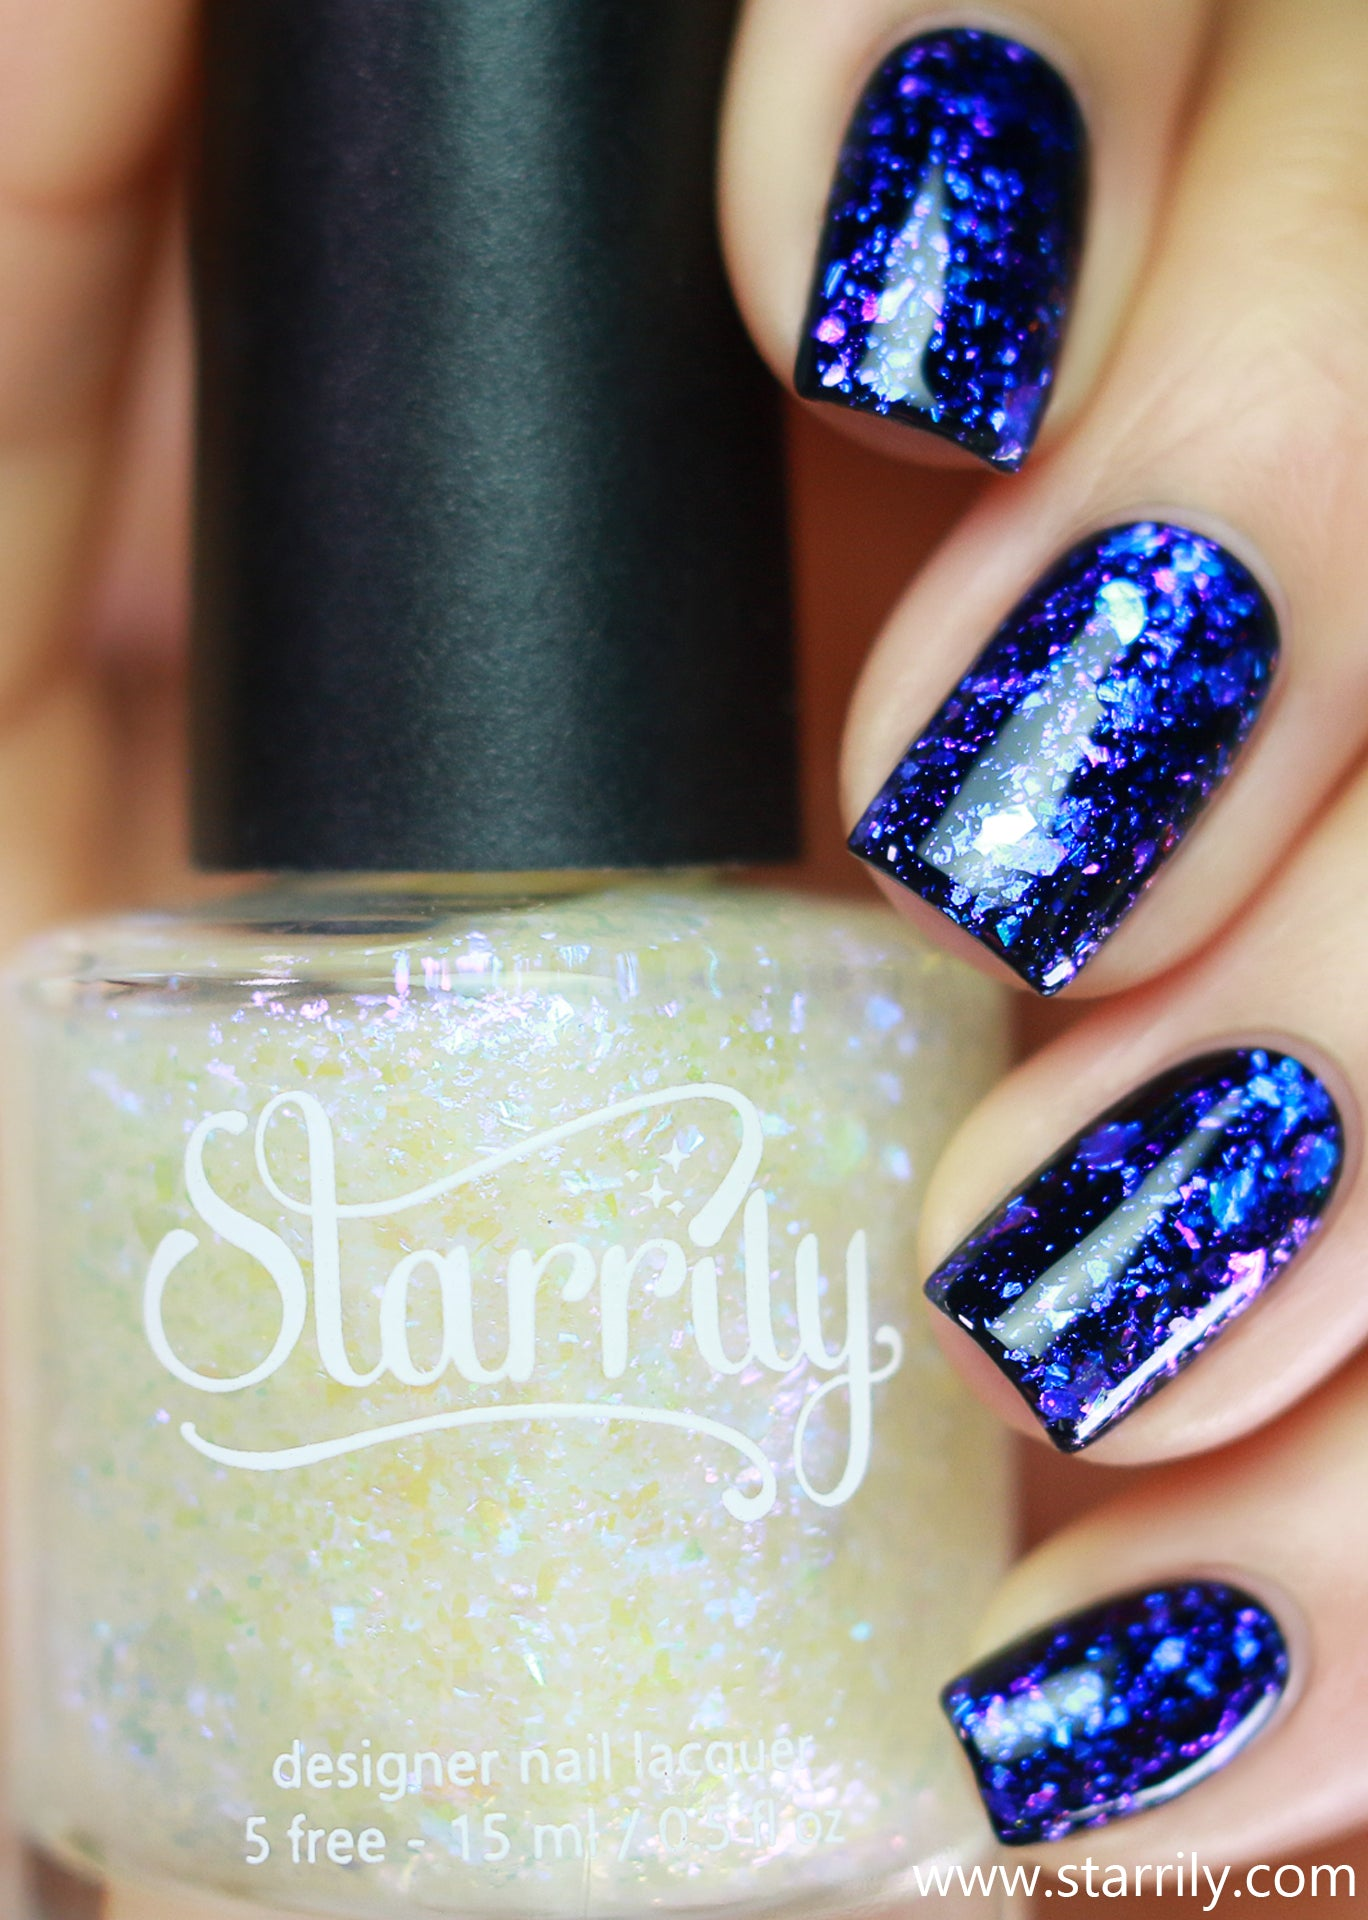 Patronus is a blue flake nail polish